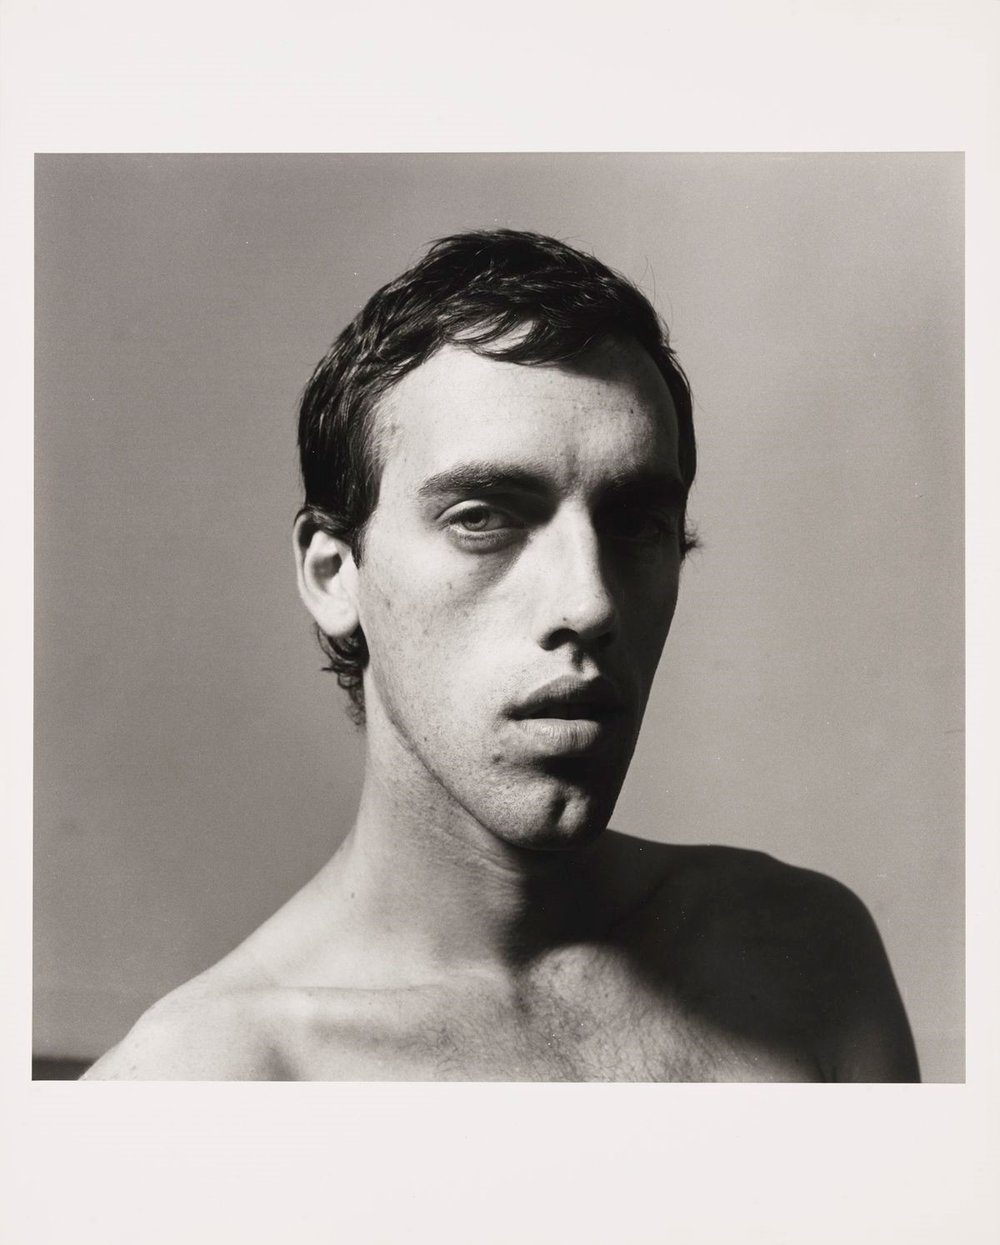 Peter Hujar (1934–1987),  David Wojnarowicz , 1981. Gelatin silver print: sheet, 19 13/16 × 15 7/8 in. (50.3 × 40.3 cm); image, 14 3/4 × 14 13/16 in. (37.5 × 37.6 cm). Whitney Museum of American Art, New York; purchase with funds from the Photography Committee 93.76. © The Peter Hujar Archive